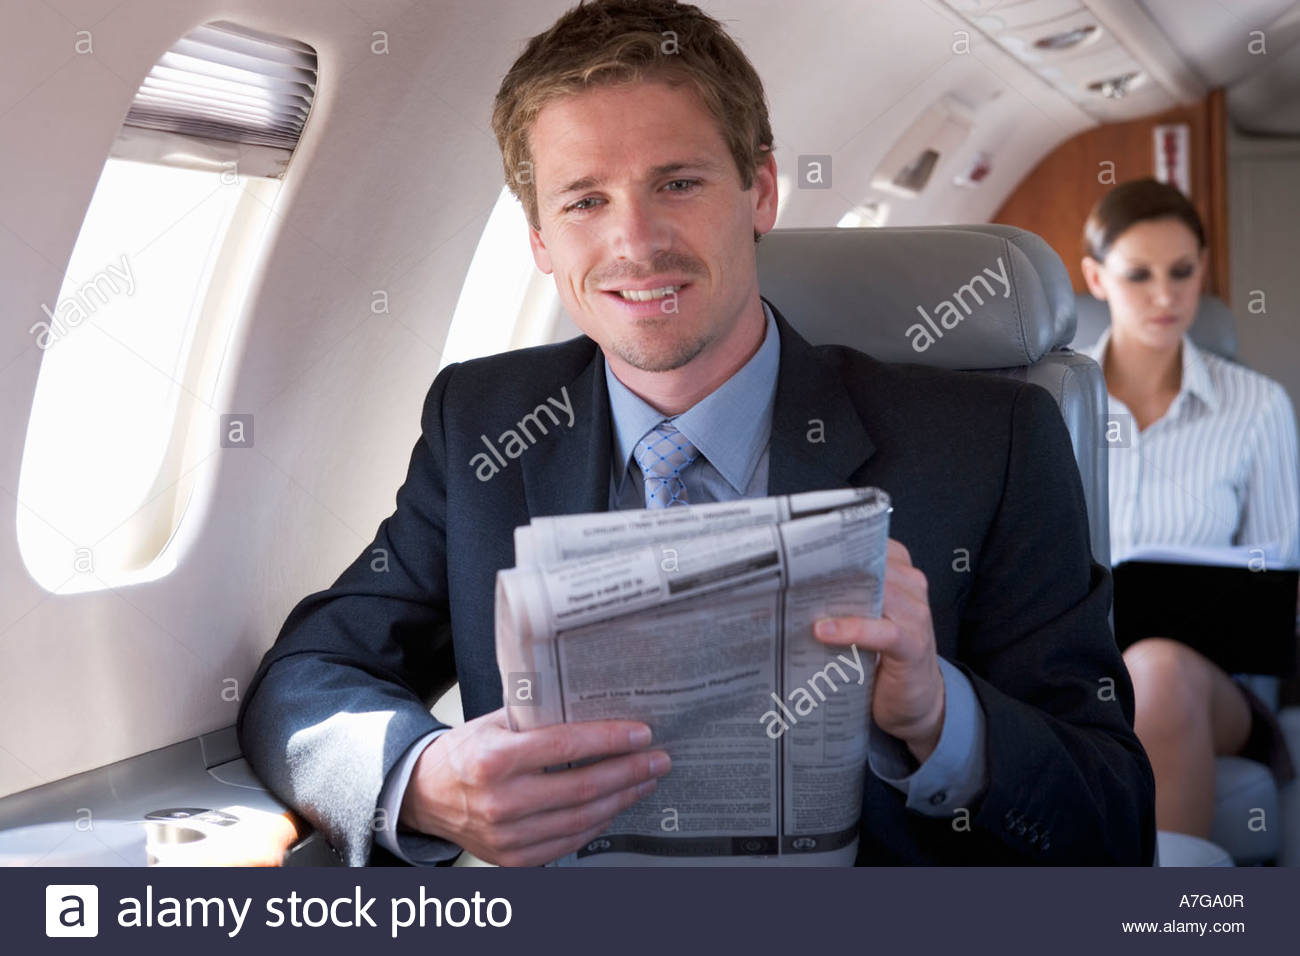 A businessman reading the paper on a plane - Stock Image